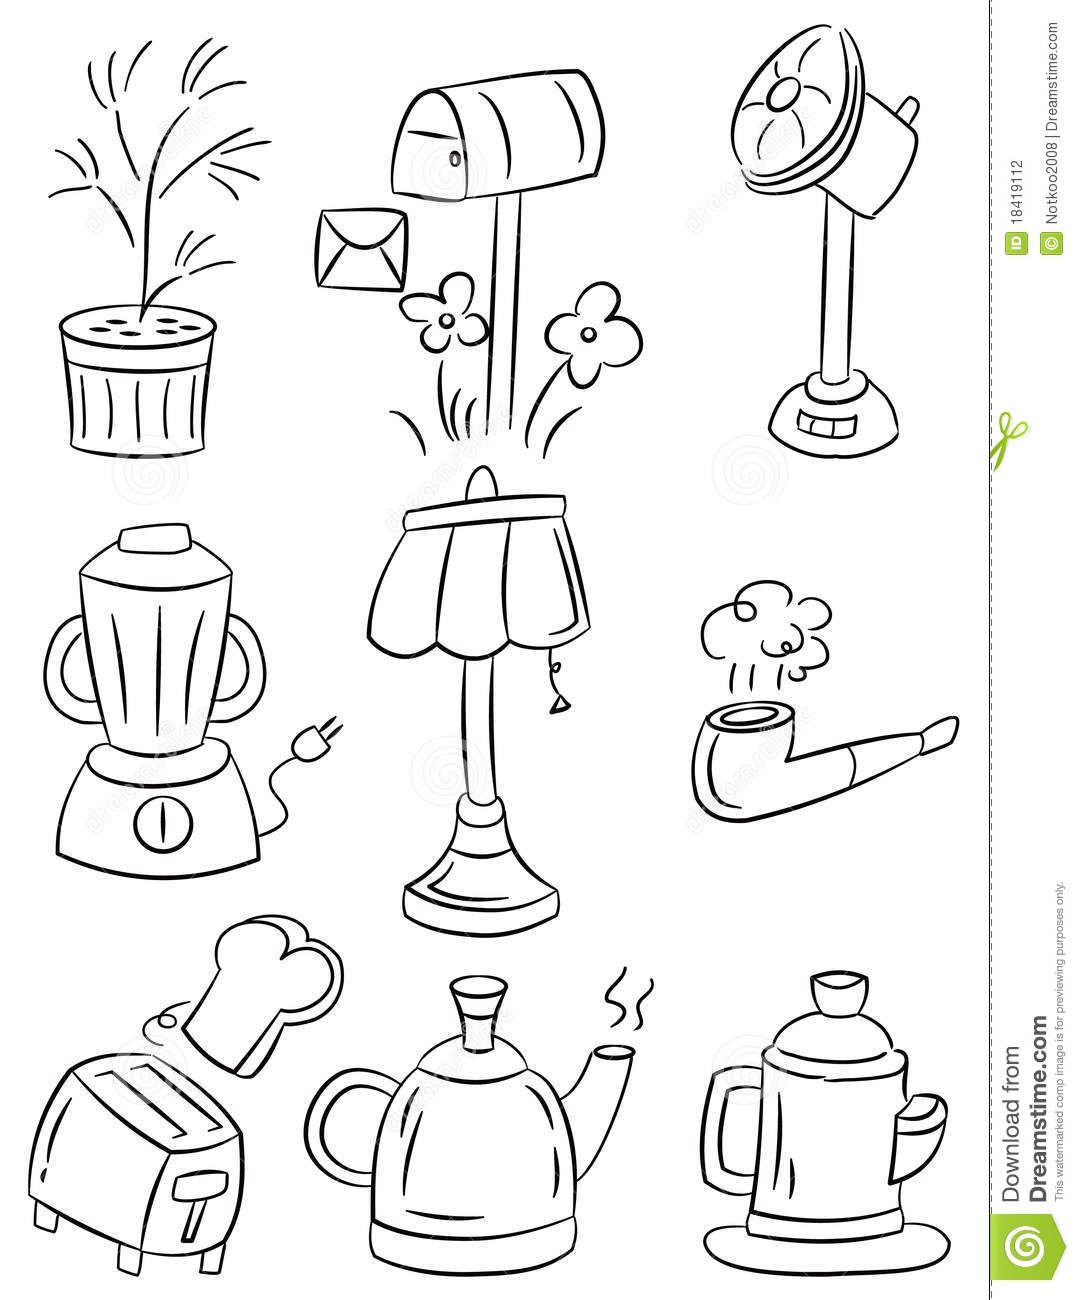 Hand Draw Home Appliances Cartoon Icon Stock Vector